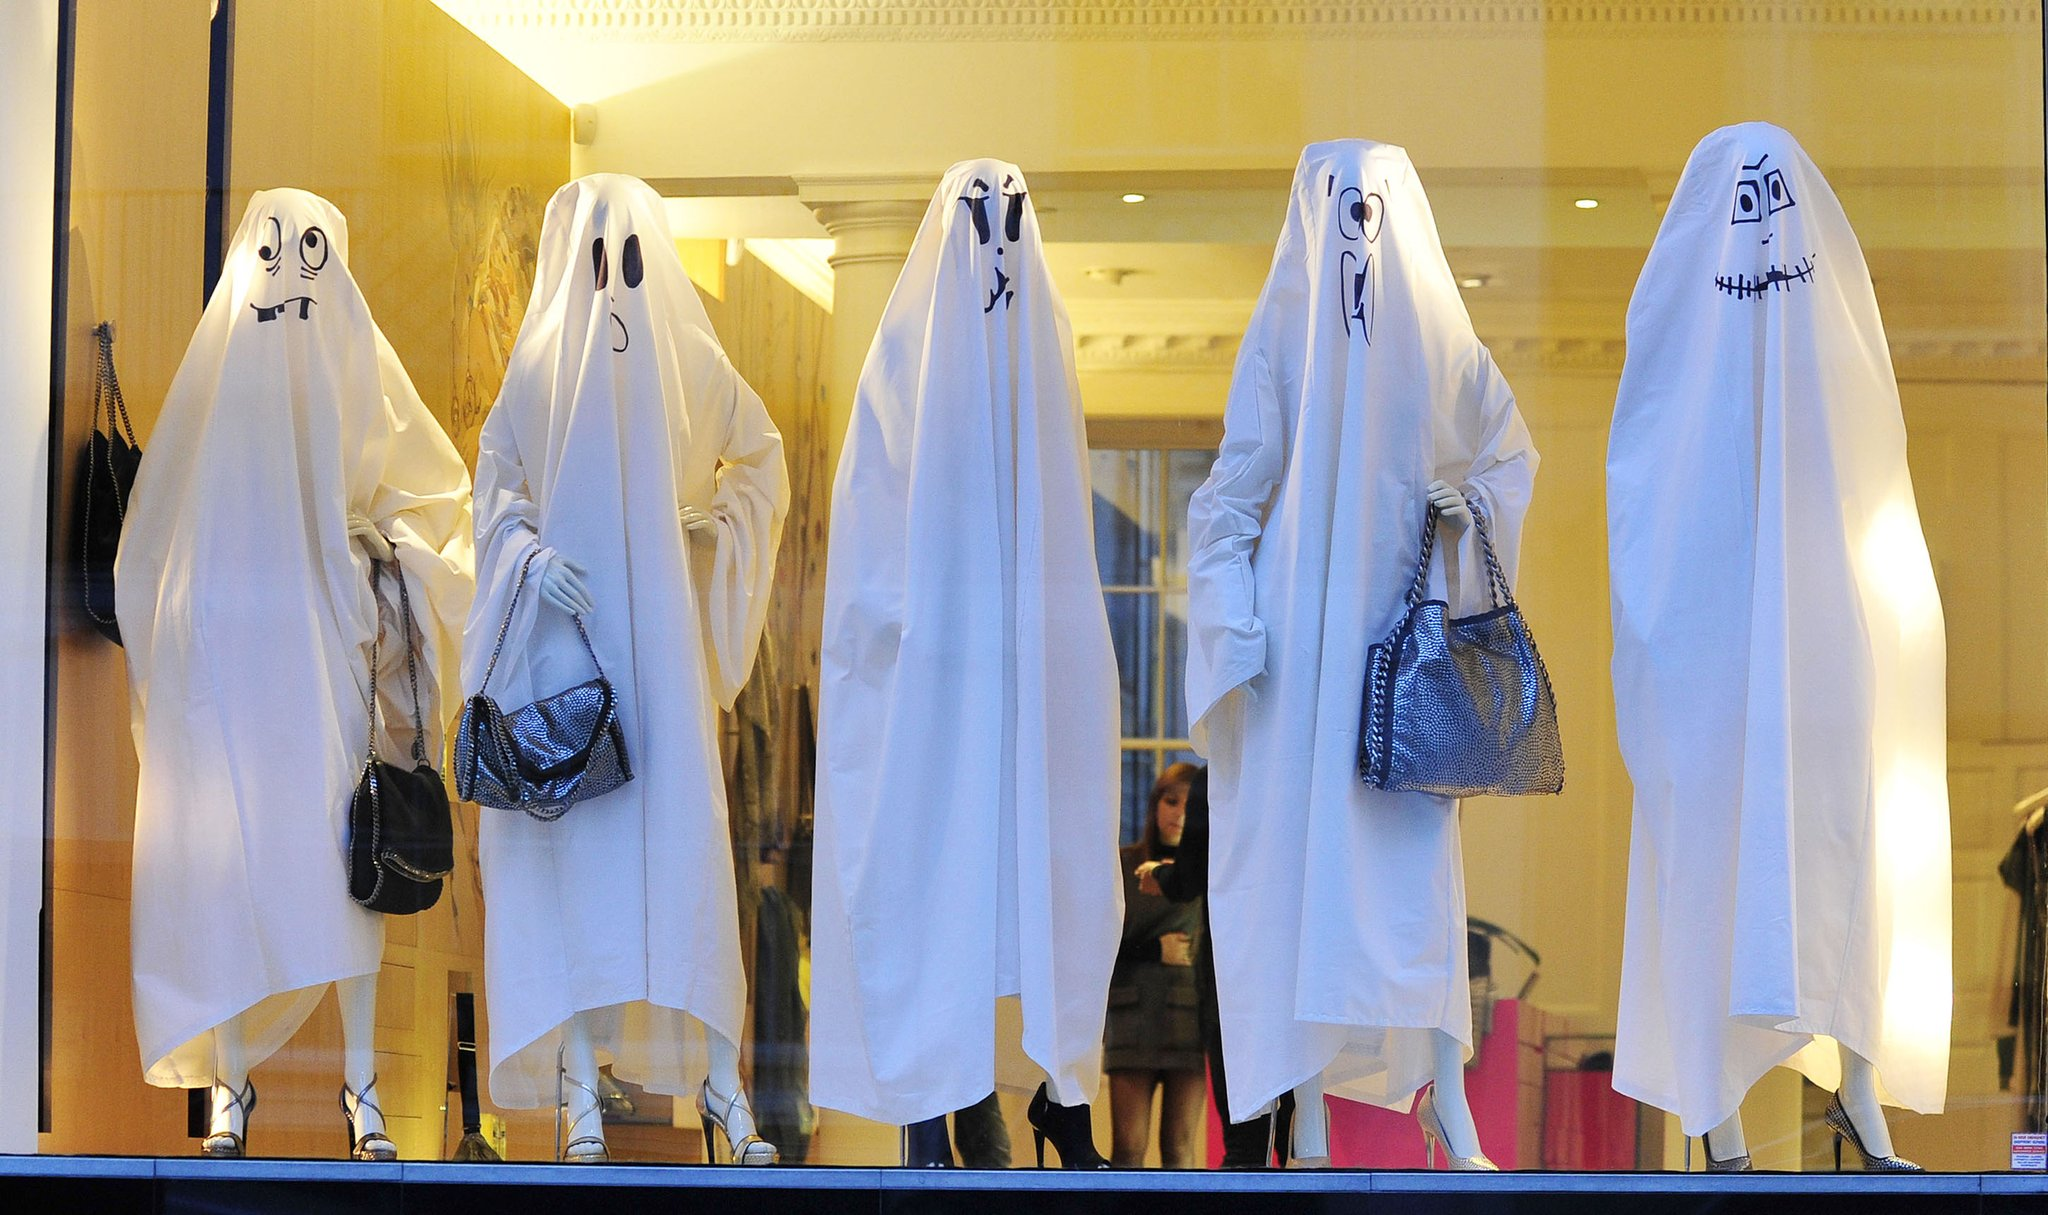 Stella Mc'Cartney store dressed its mannequins for Halloween in ghosts with silly faces.